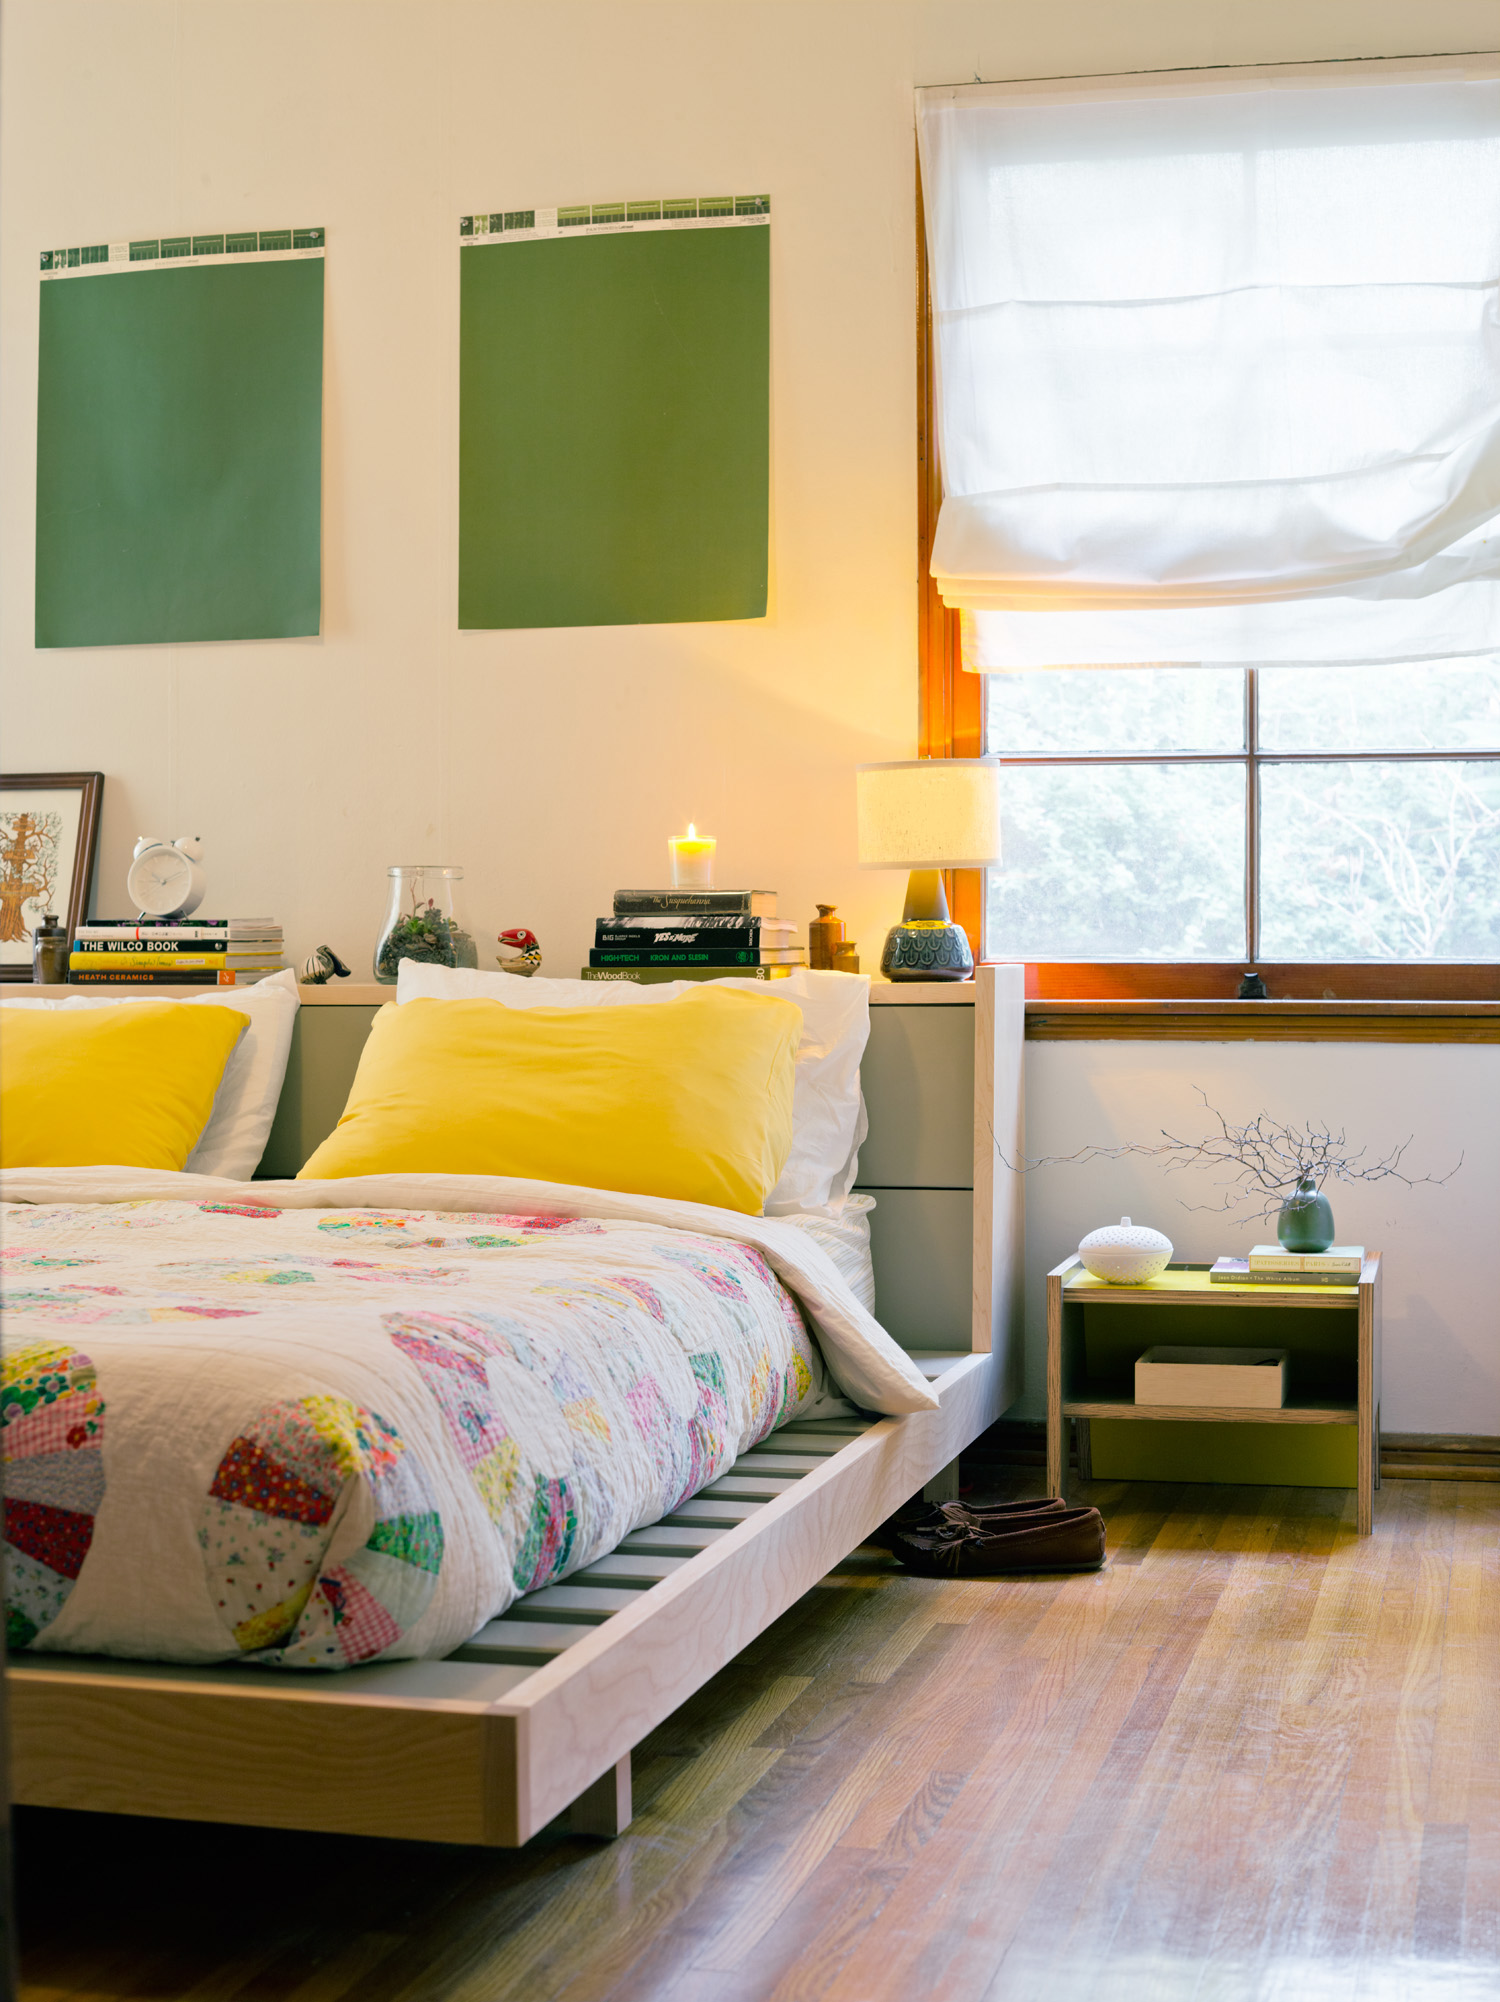 Make the most of a small bedroom with these savvy design solutions ...